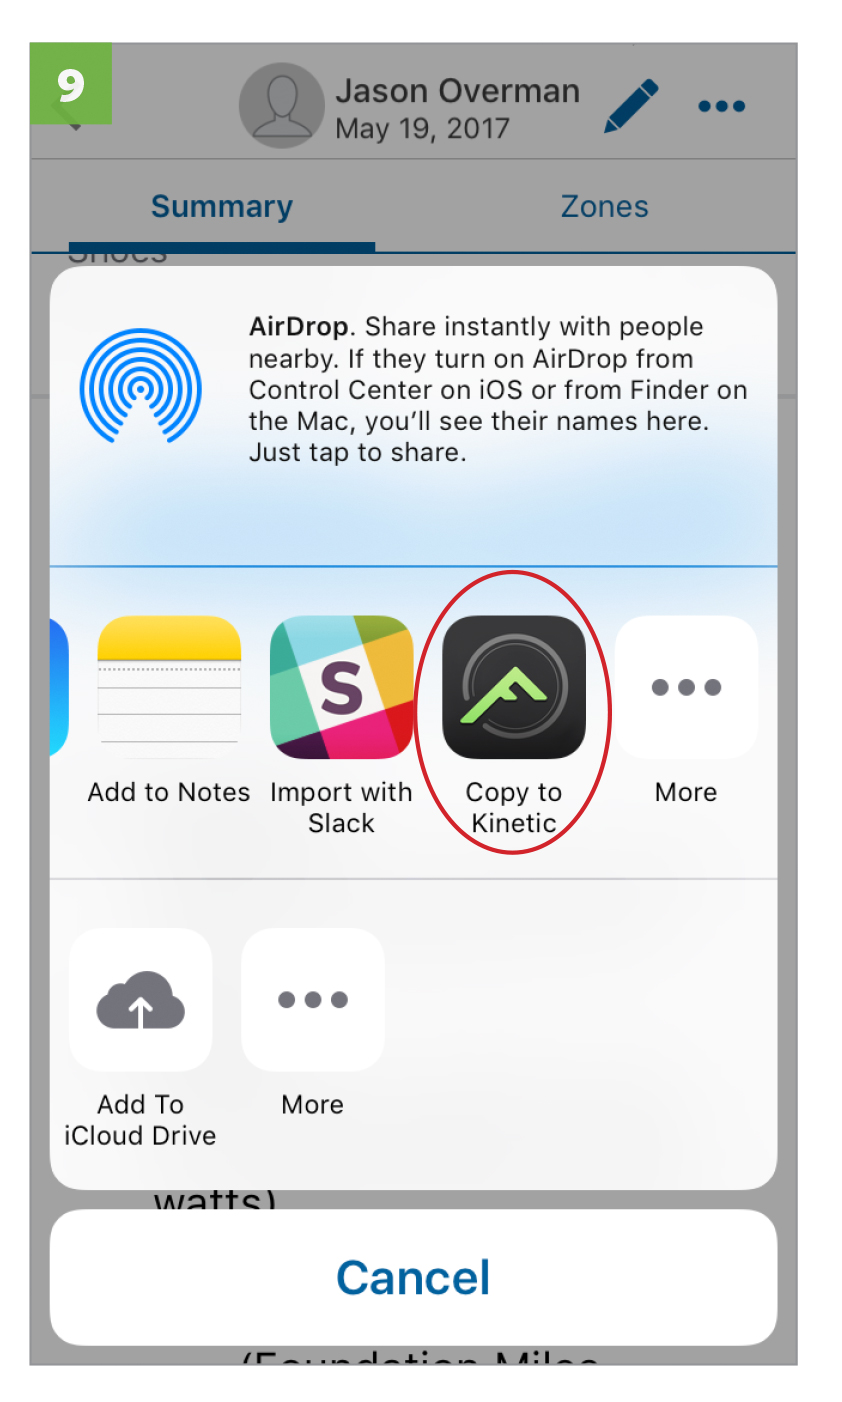 On the sharing selection bar, select  COPY TO KINETIC .